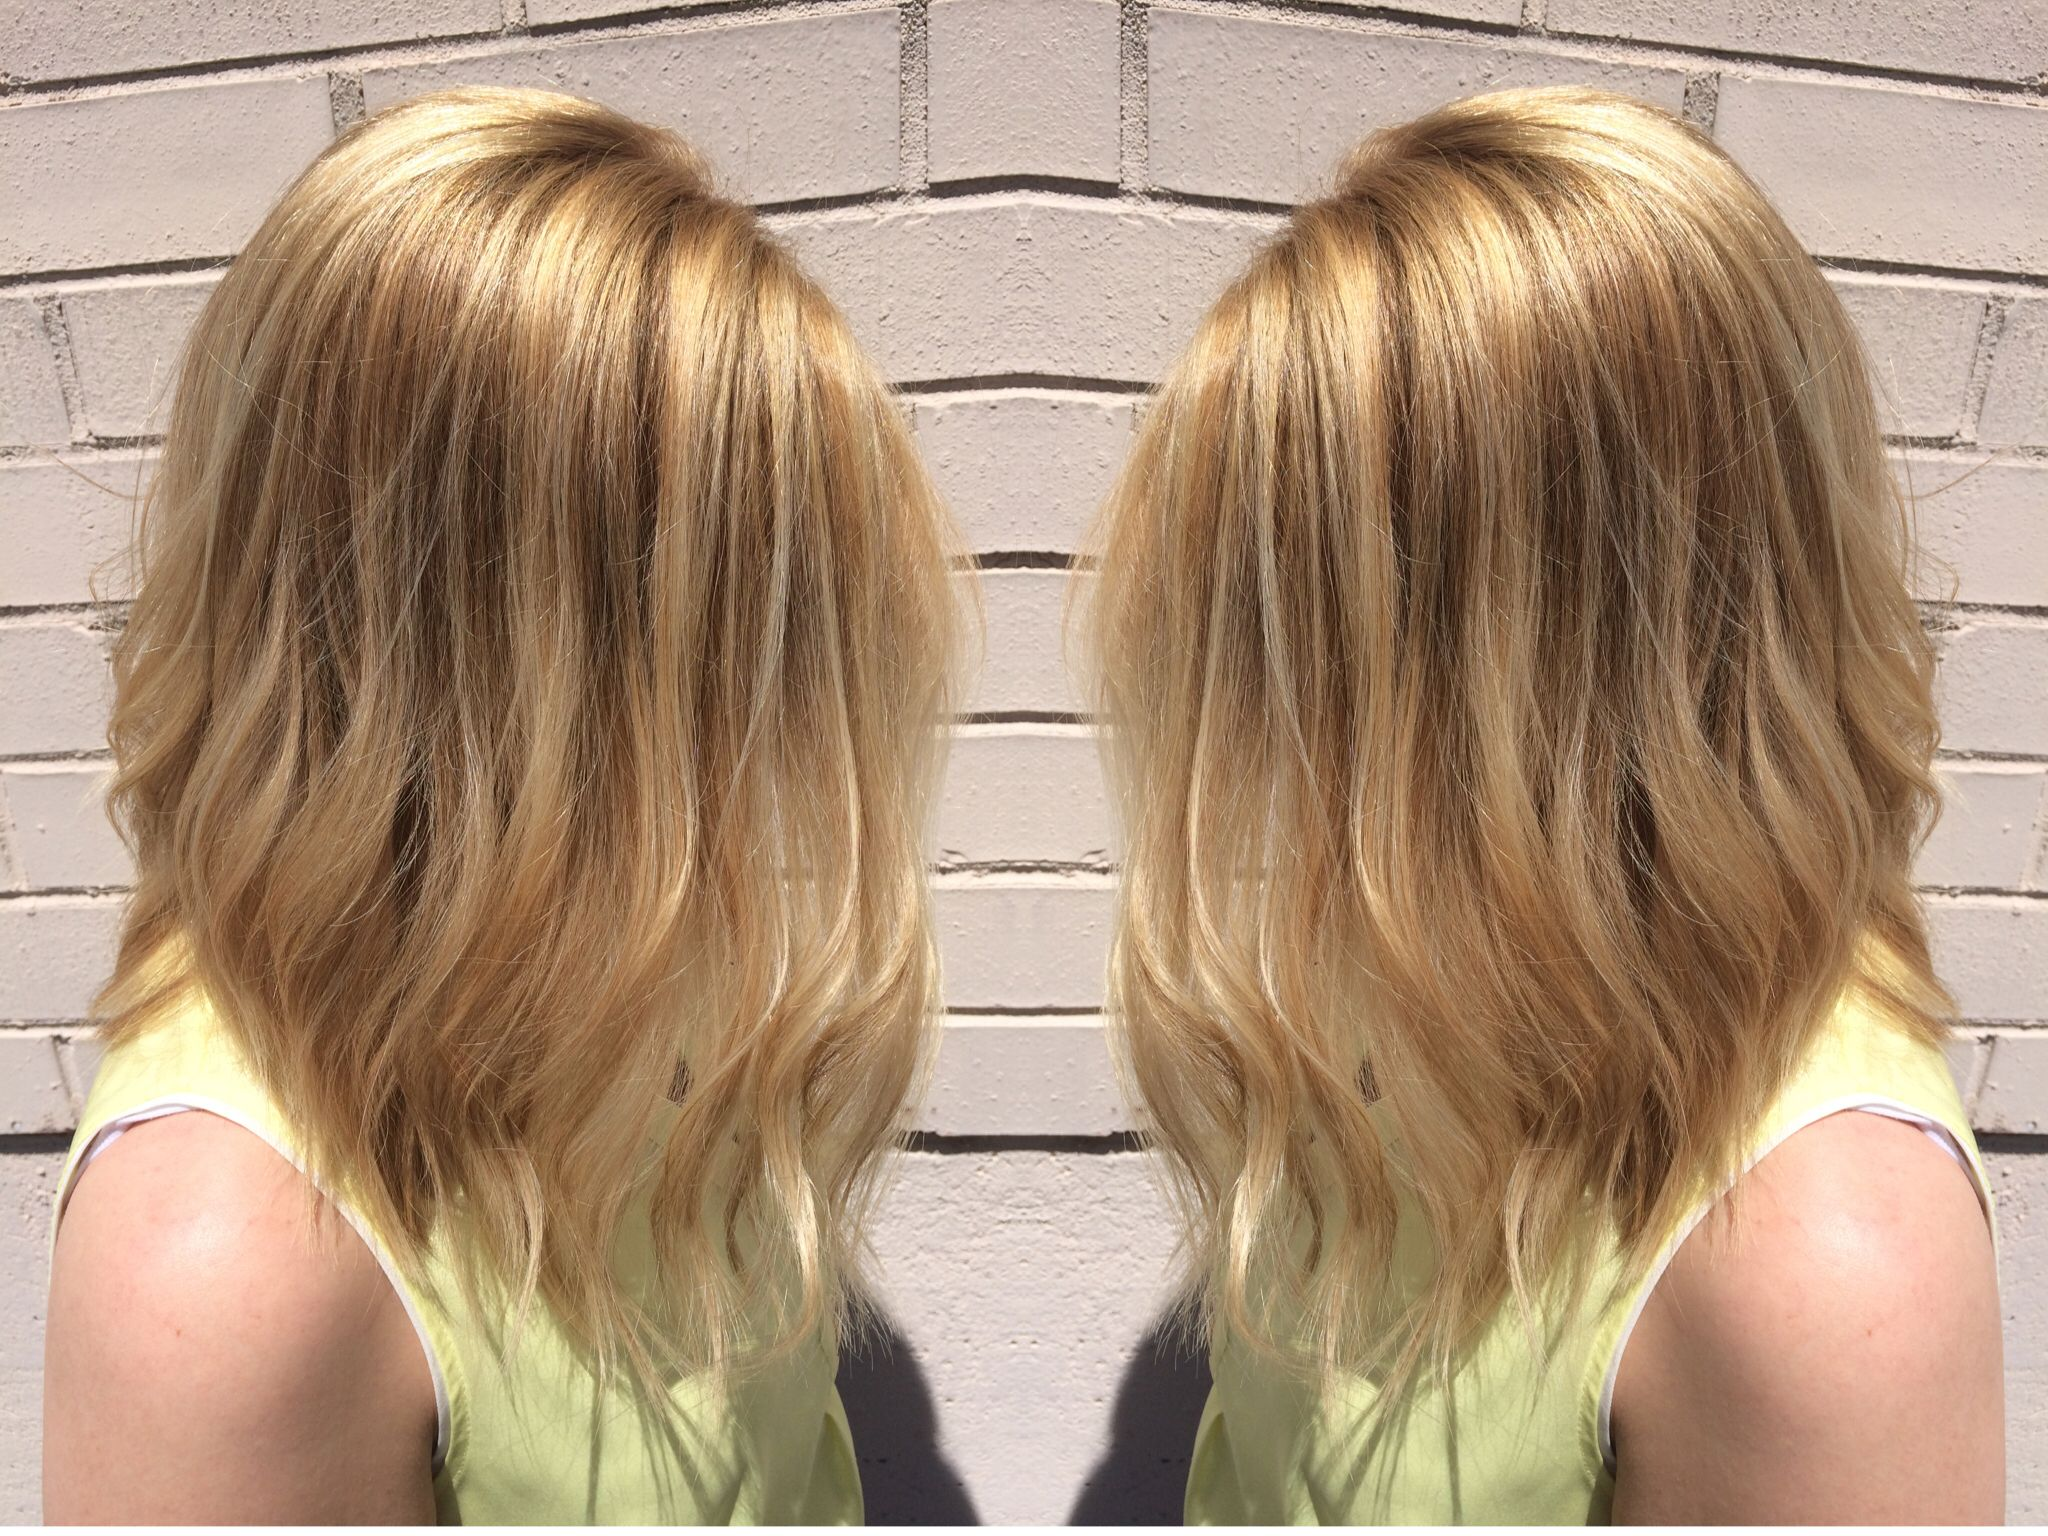 Astounding Haircut Color By Elmira At 444 Salon Angled Long Wavy Bob With Hairstyles For Women Draintrainus